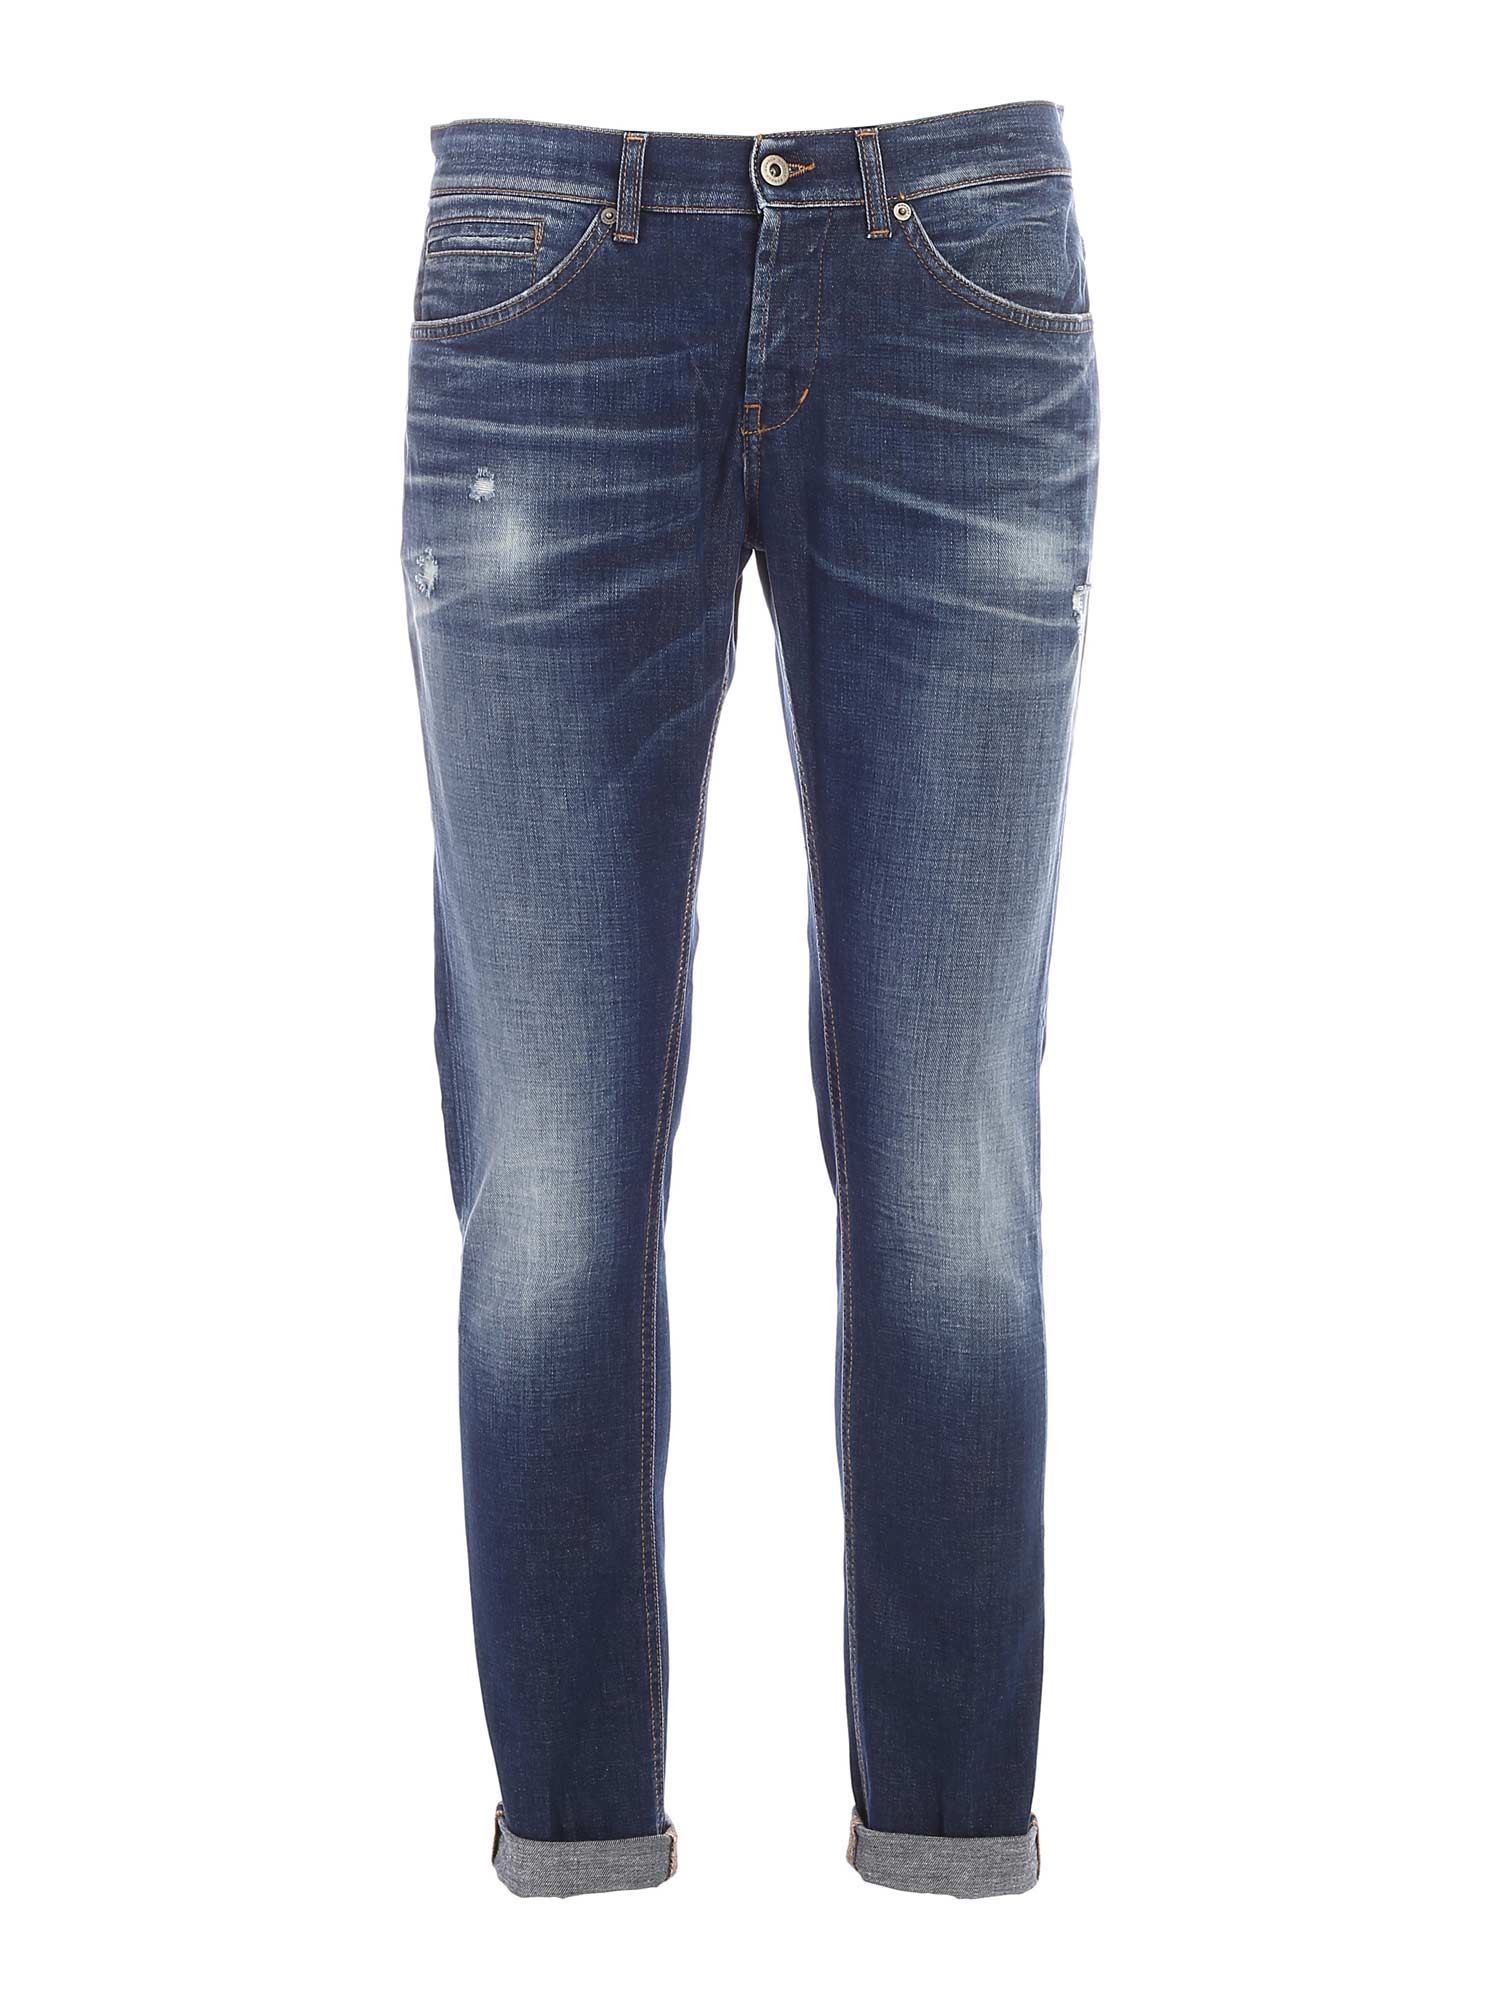 Dondup GEORGE JEANS IN BLUE